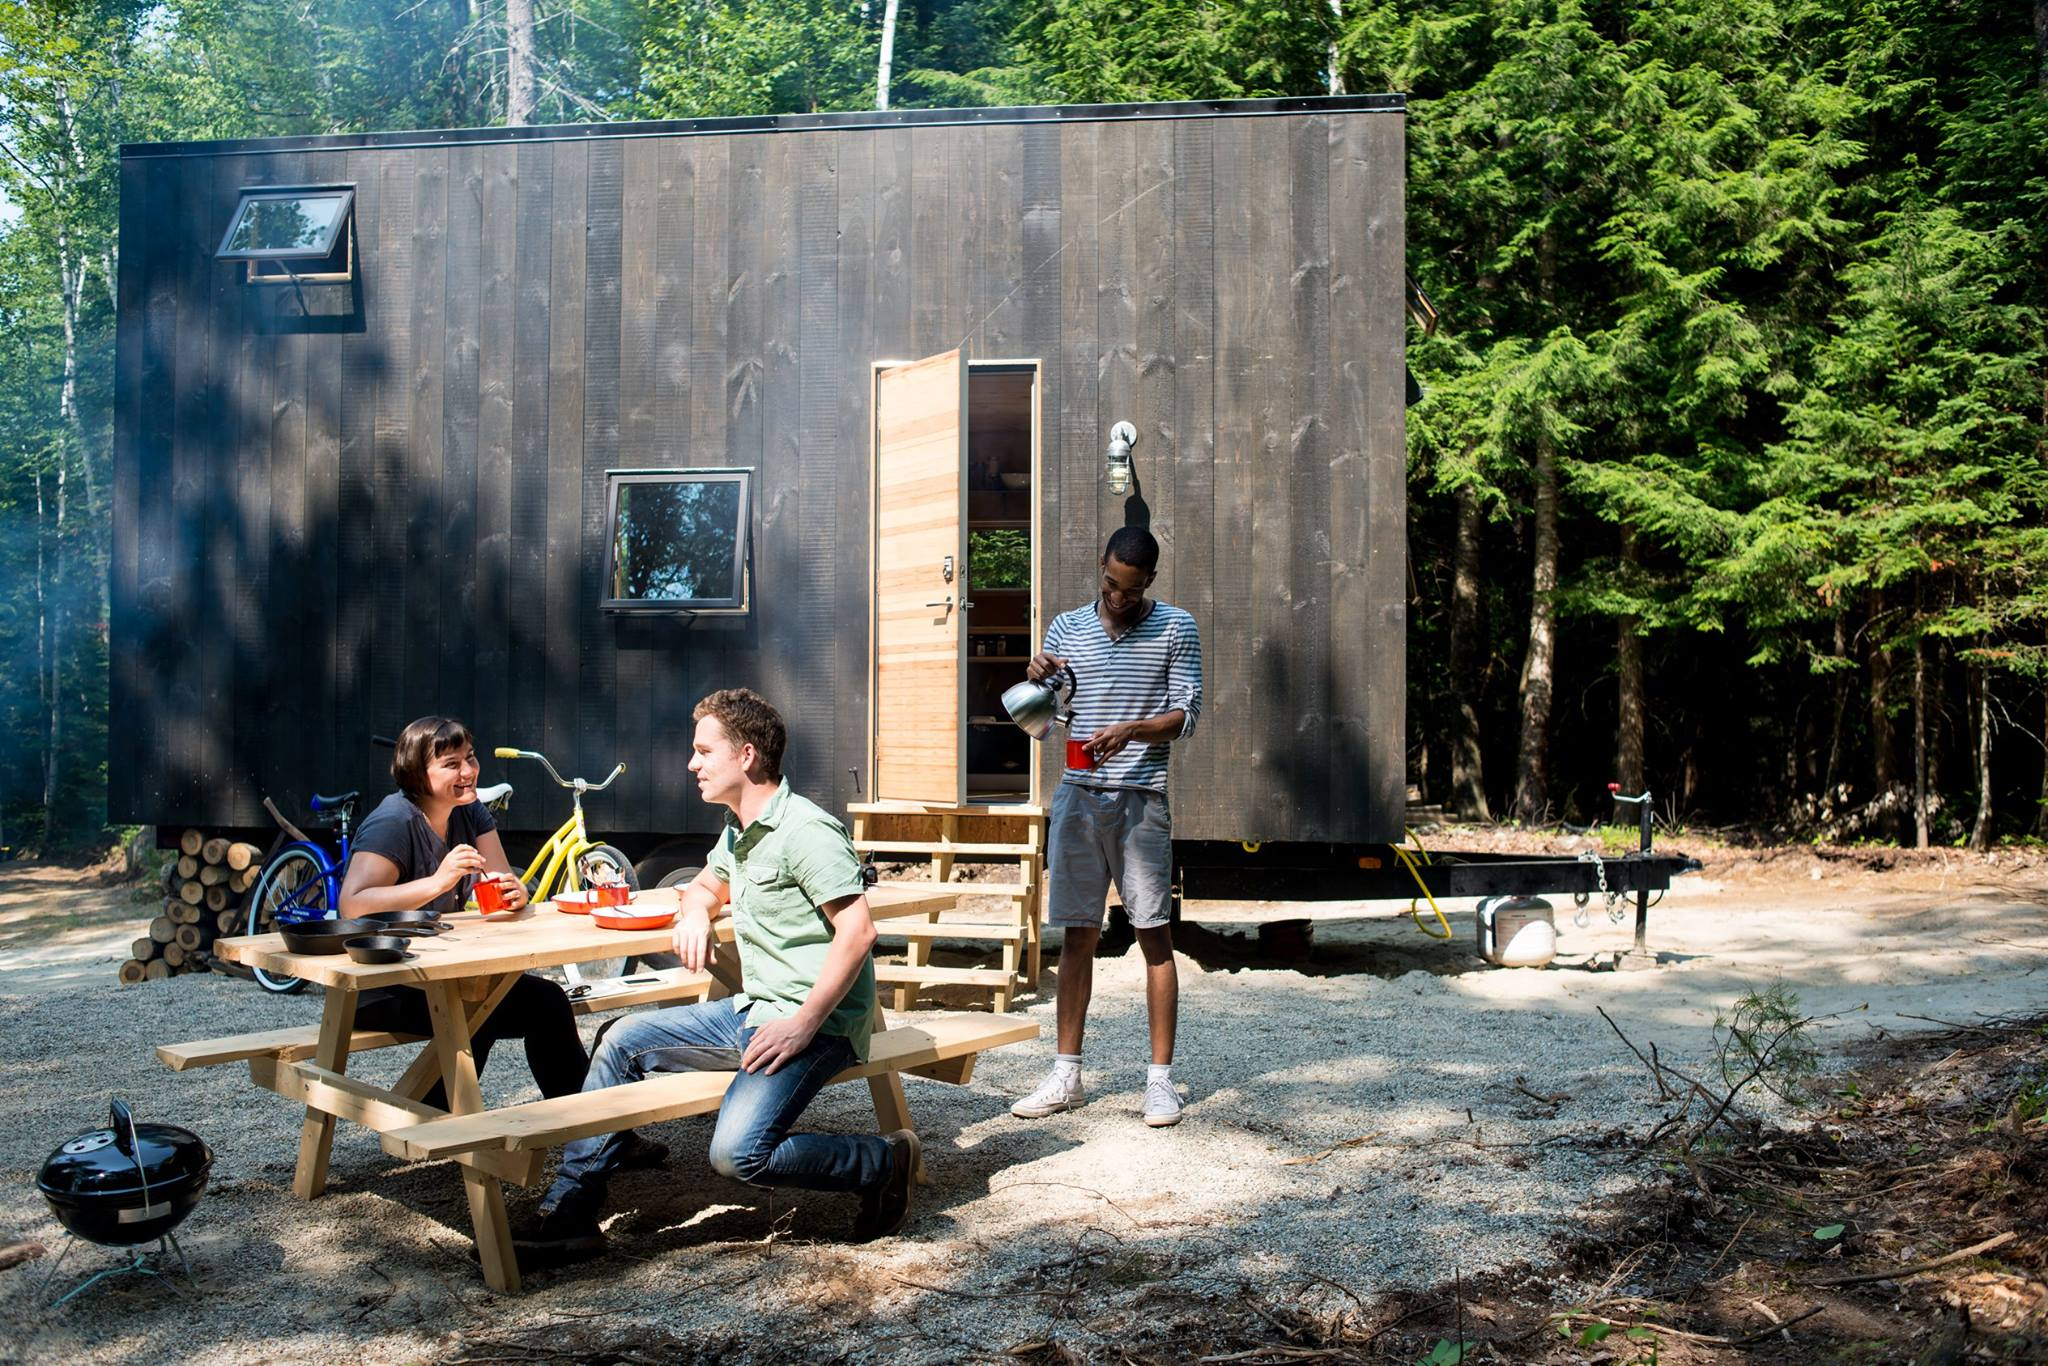 Millennial Housing Lab's first Boston Getaway house in southern New Hampshire. Photo by Millennial Housing Lab.